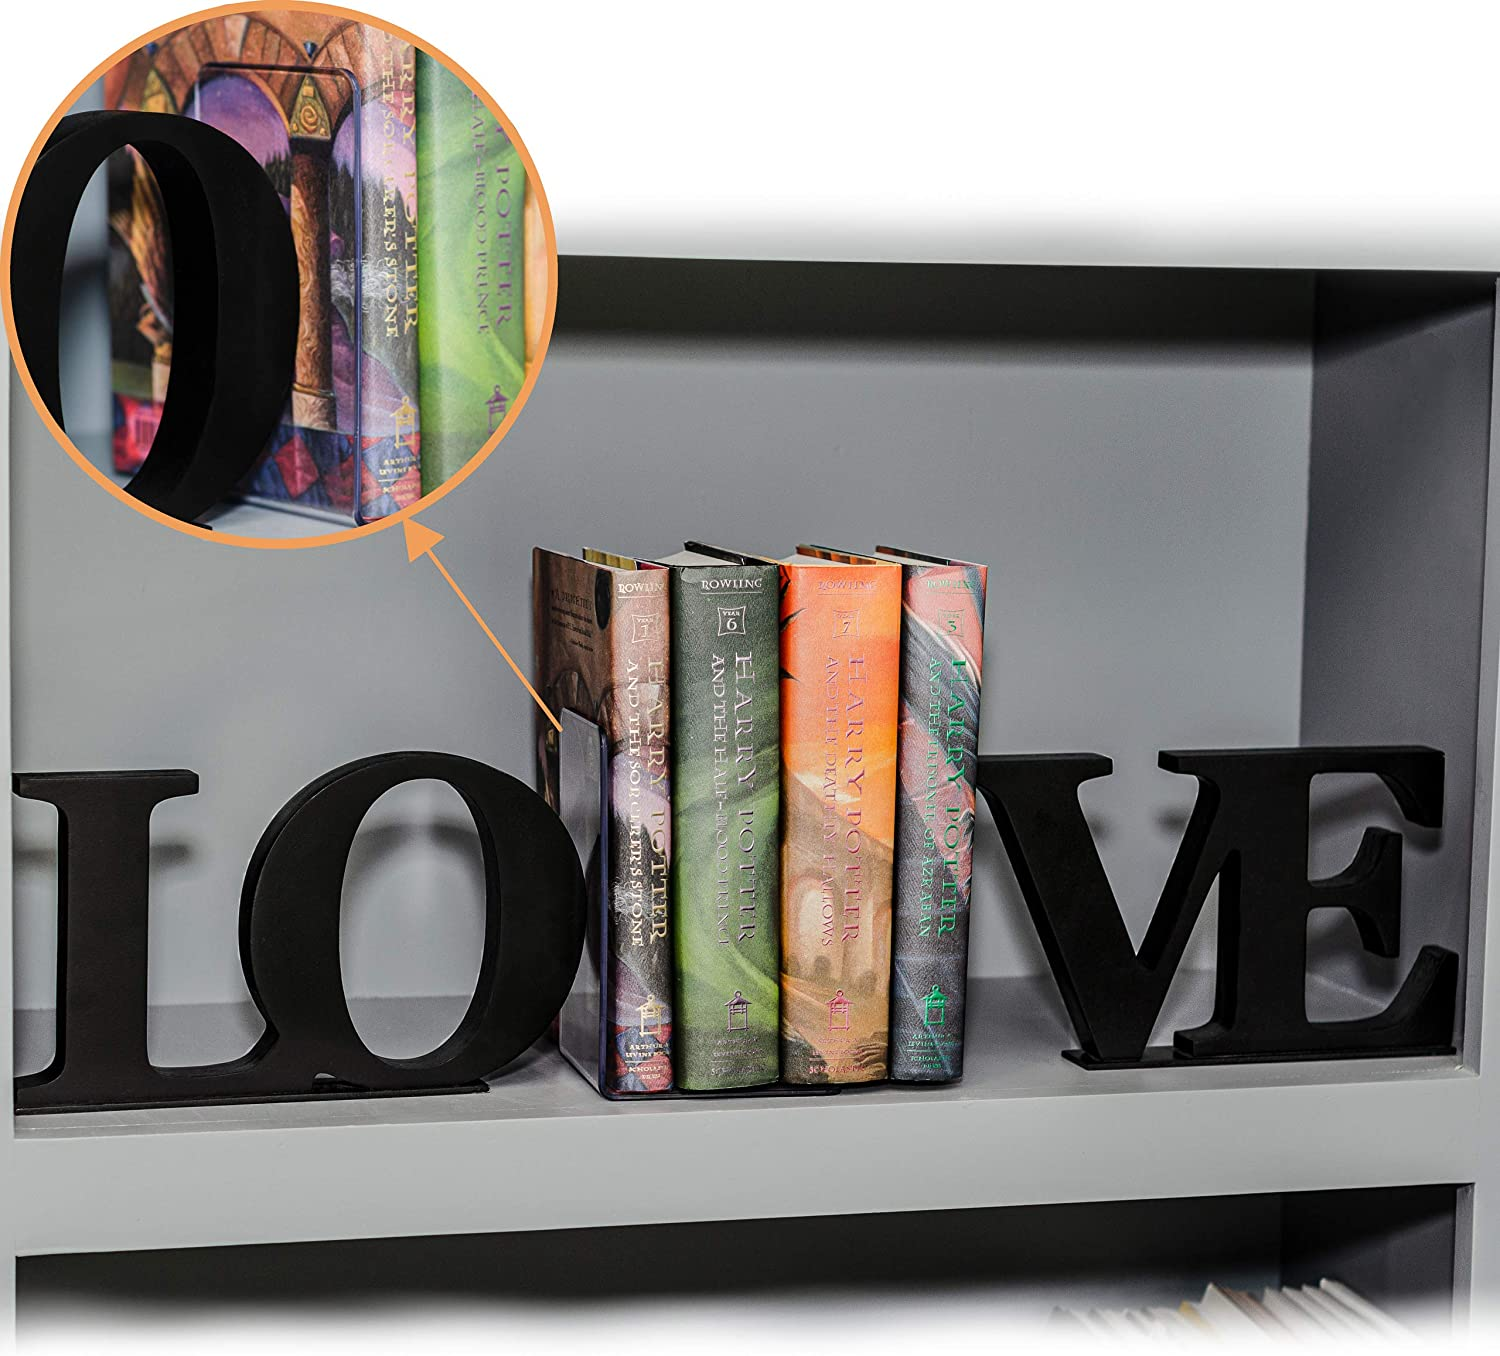 /  Desk and Book Shelf Decorations and Organizers Love Wood Book Ends Set with Plastic L Shaped Book Ends for Heavy Books 2 Pair Black Book Holders/  LongStep Decorative Love Bookends for Shelves